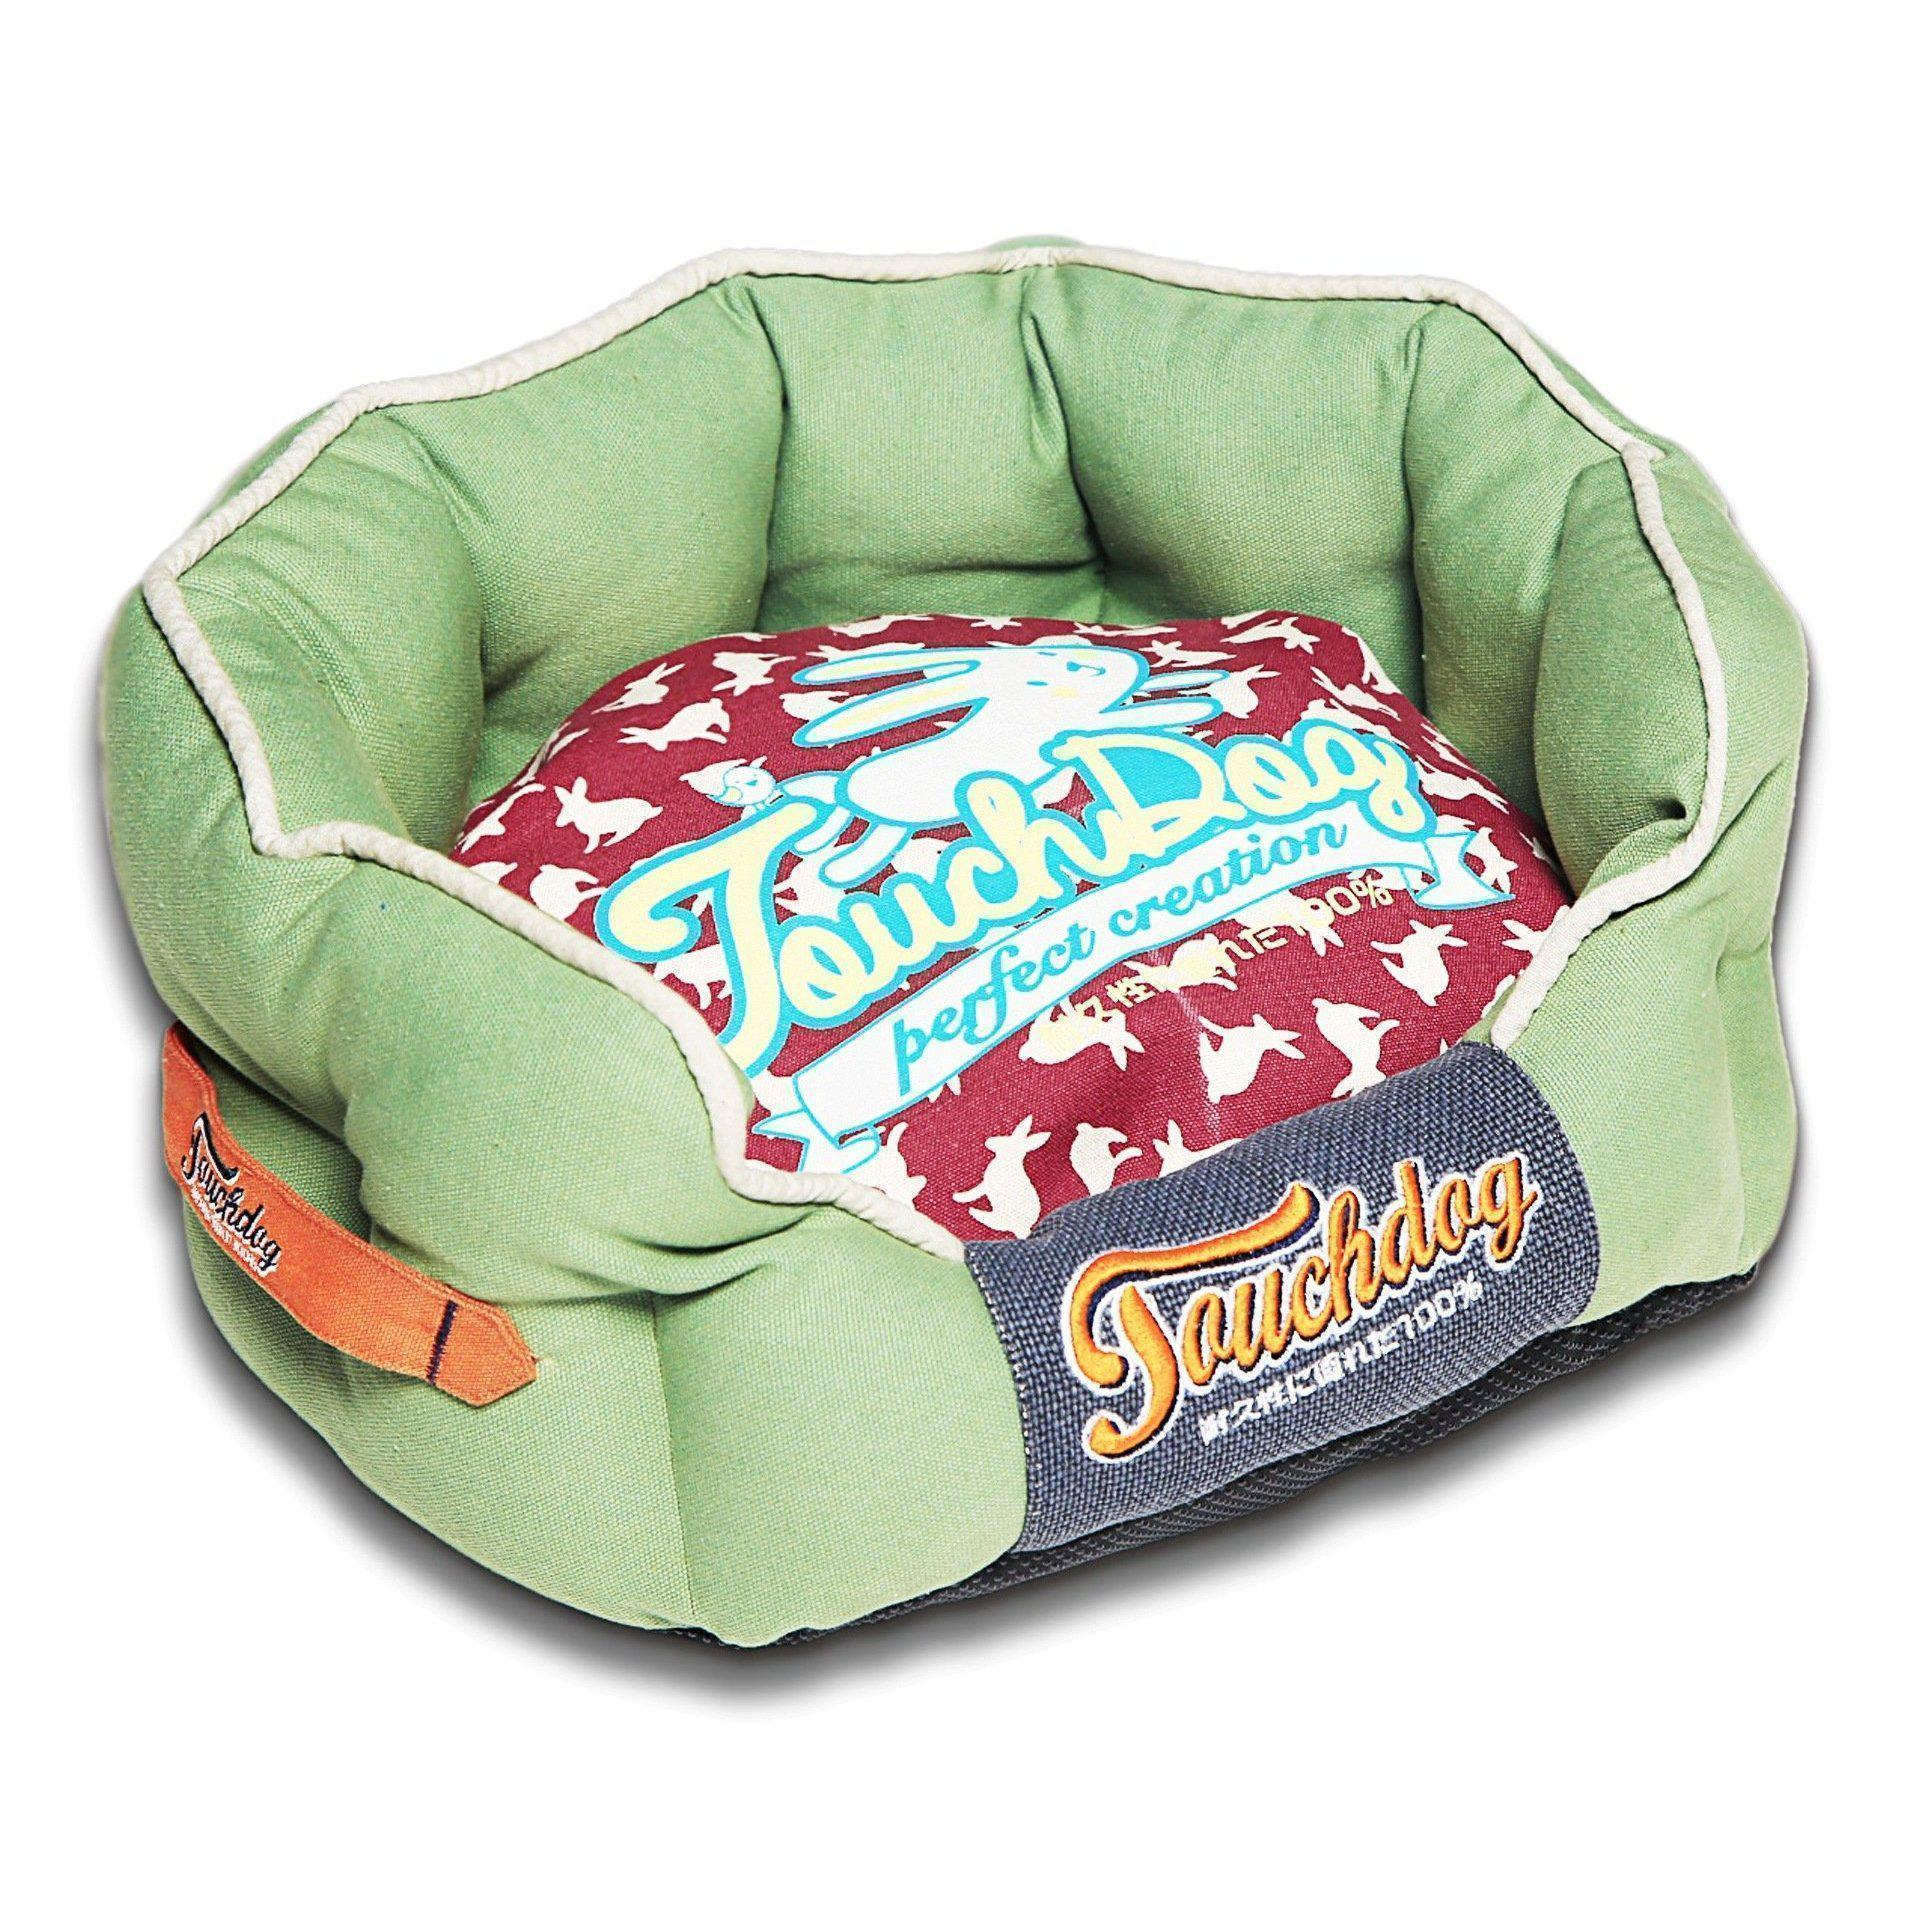 Touchdog Rabbit-Spotted Premium Rounded Dog Bed-Touchdog-DirtyFurClothing